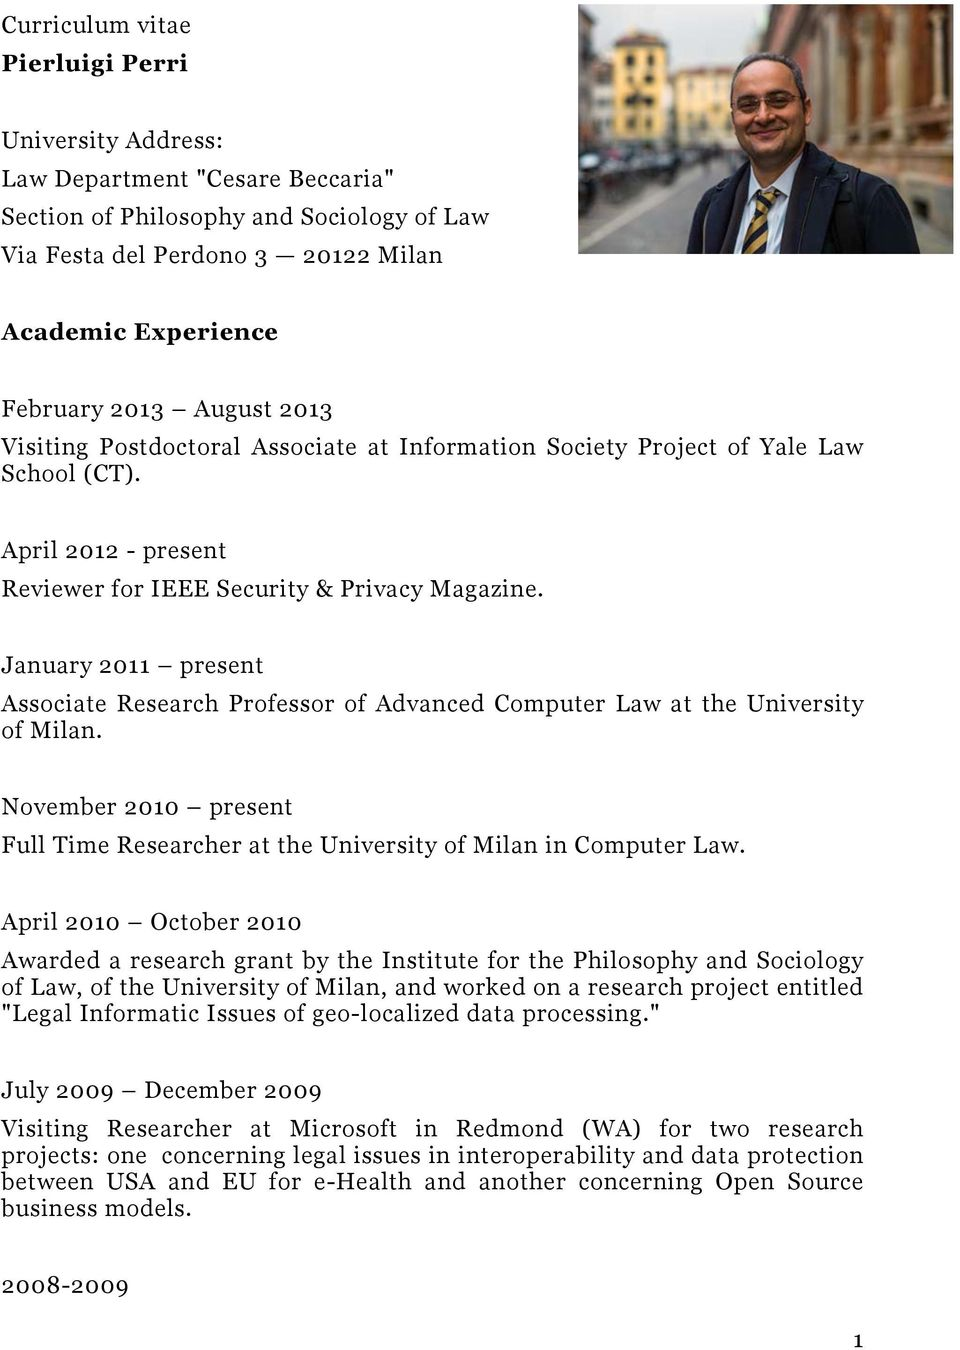 January 2011 present Associate Research Professor of Advanced Computer Law at the University of Milan. November 2010 present Full Time Researcher at the University of Milan in Computer Law.